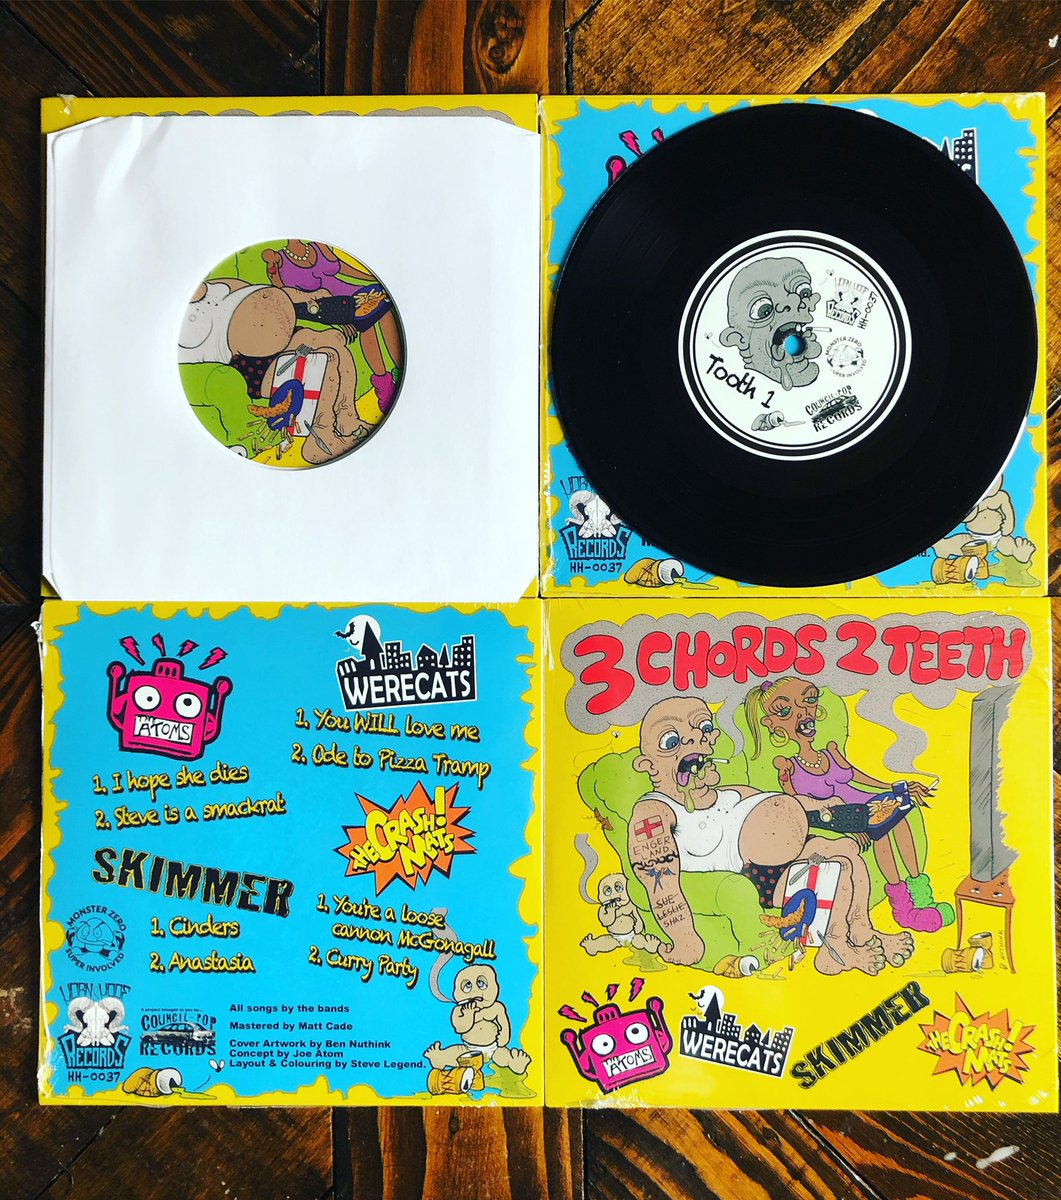 """JUST IN! """"3 Chords 2 Teeth"""" 4 way split 7"""" vinyl! The Crash Mats/ Werecats / The Atoms / Skimmer) £7 including postage  Get yours now, we only have 40 of these to sell, so click here https://hornhoofrecords.bandcamp.com/album/3-chords-2-teeth… to order yours. #punknews #VinylRevival #punkvinyl #punkrecords pic.twitter.com/O4Ka9m2cLF"""